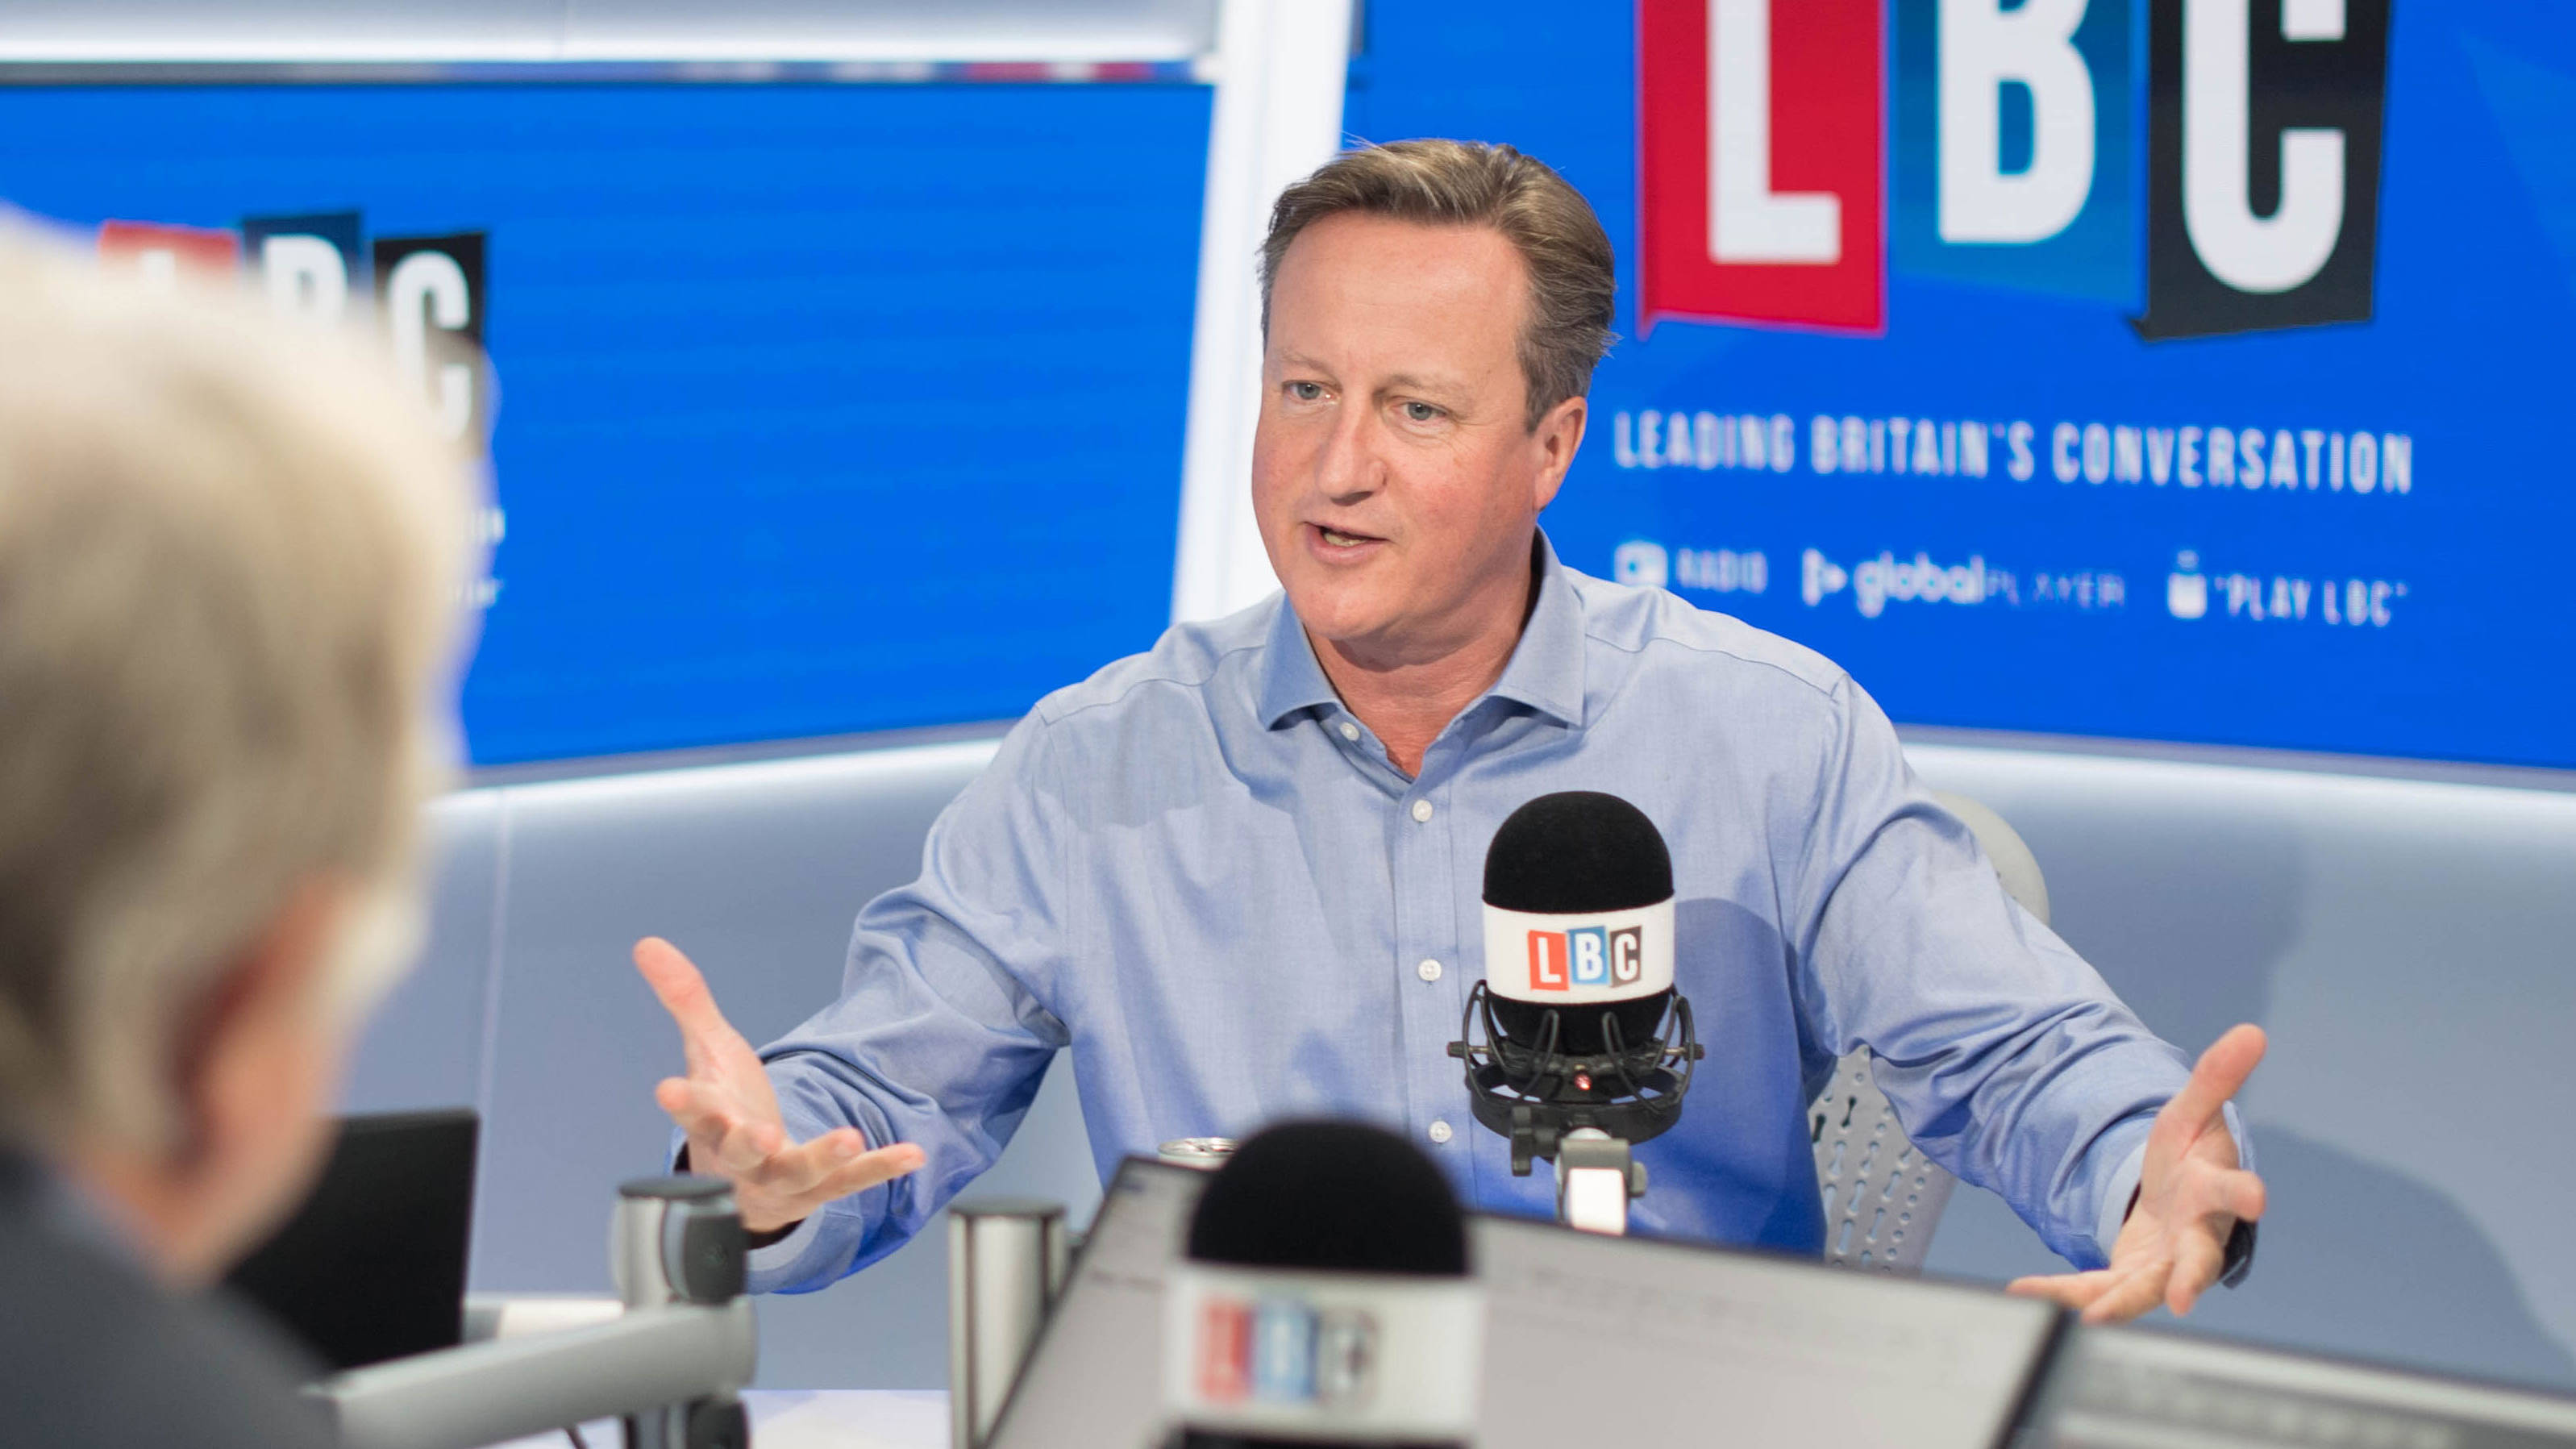 David Cameron's LBC Interview: 10 Things We Learned